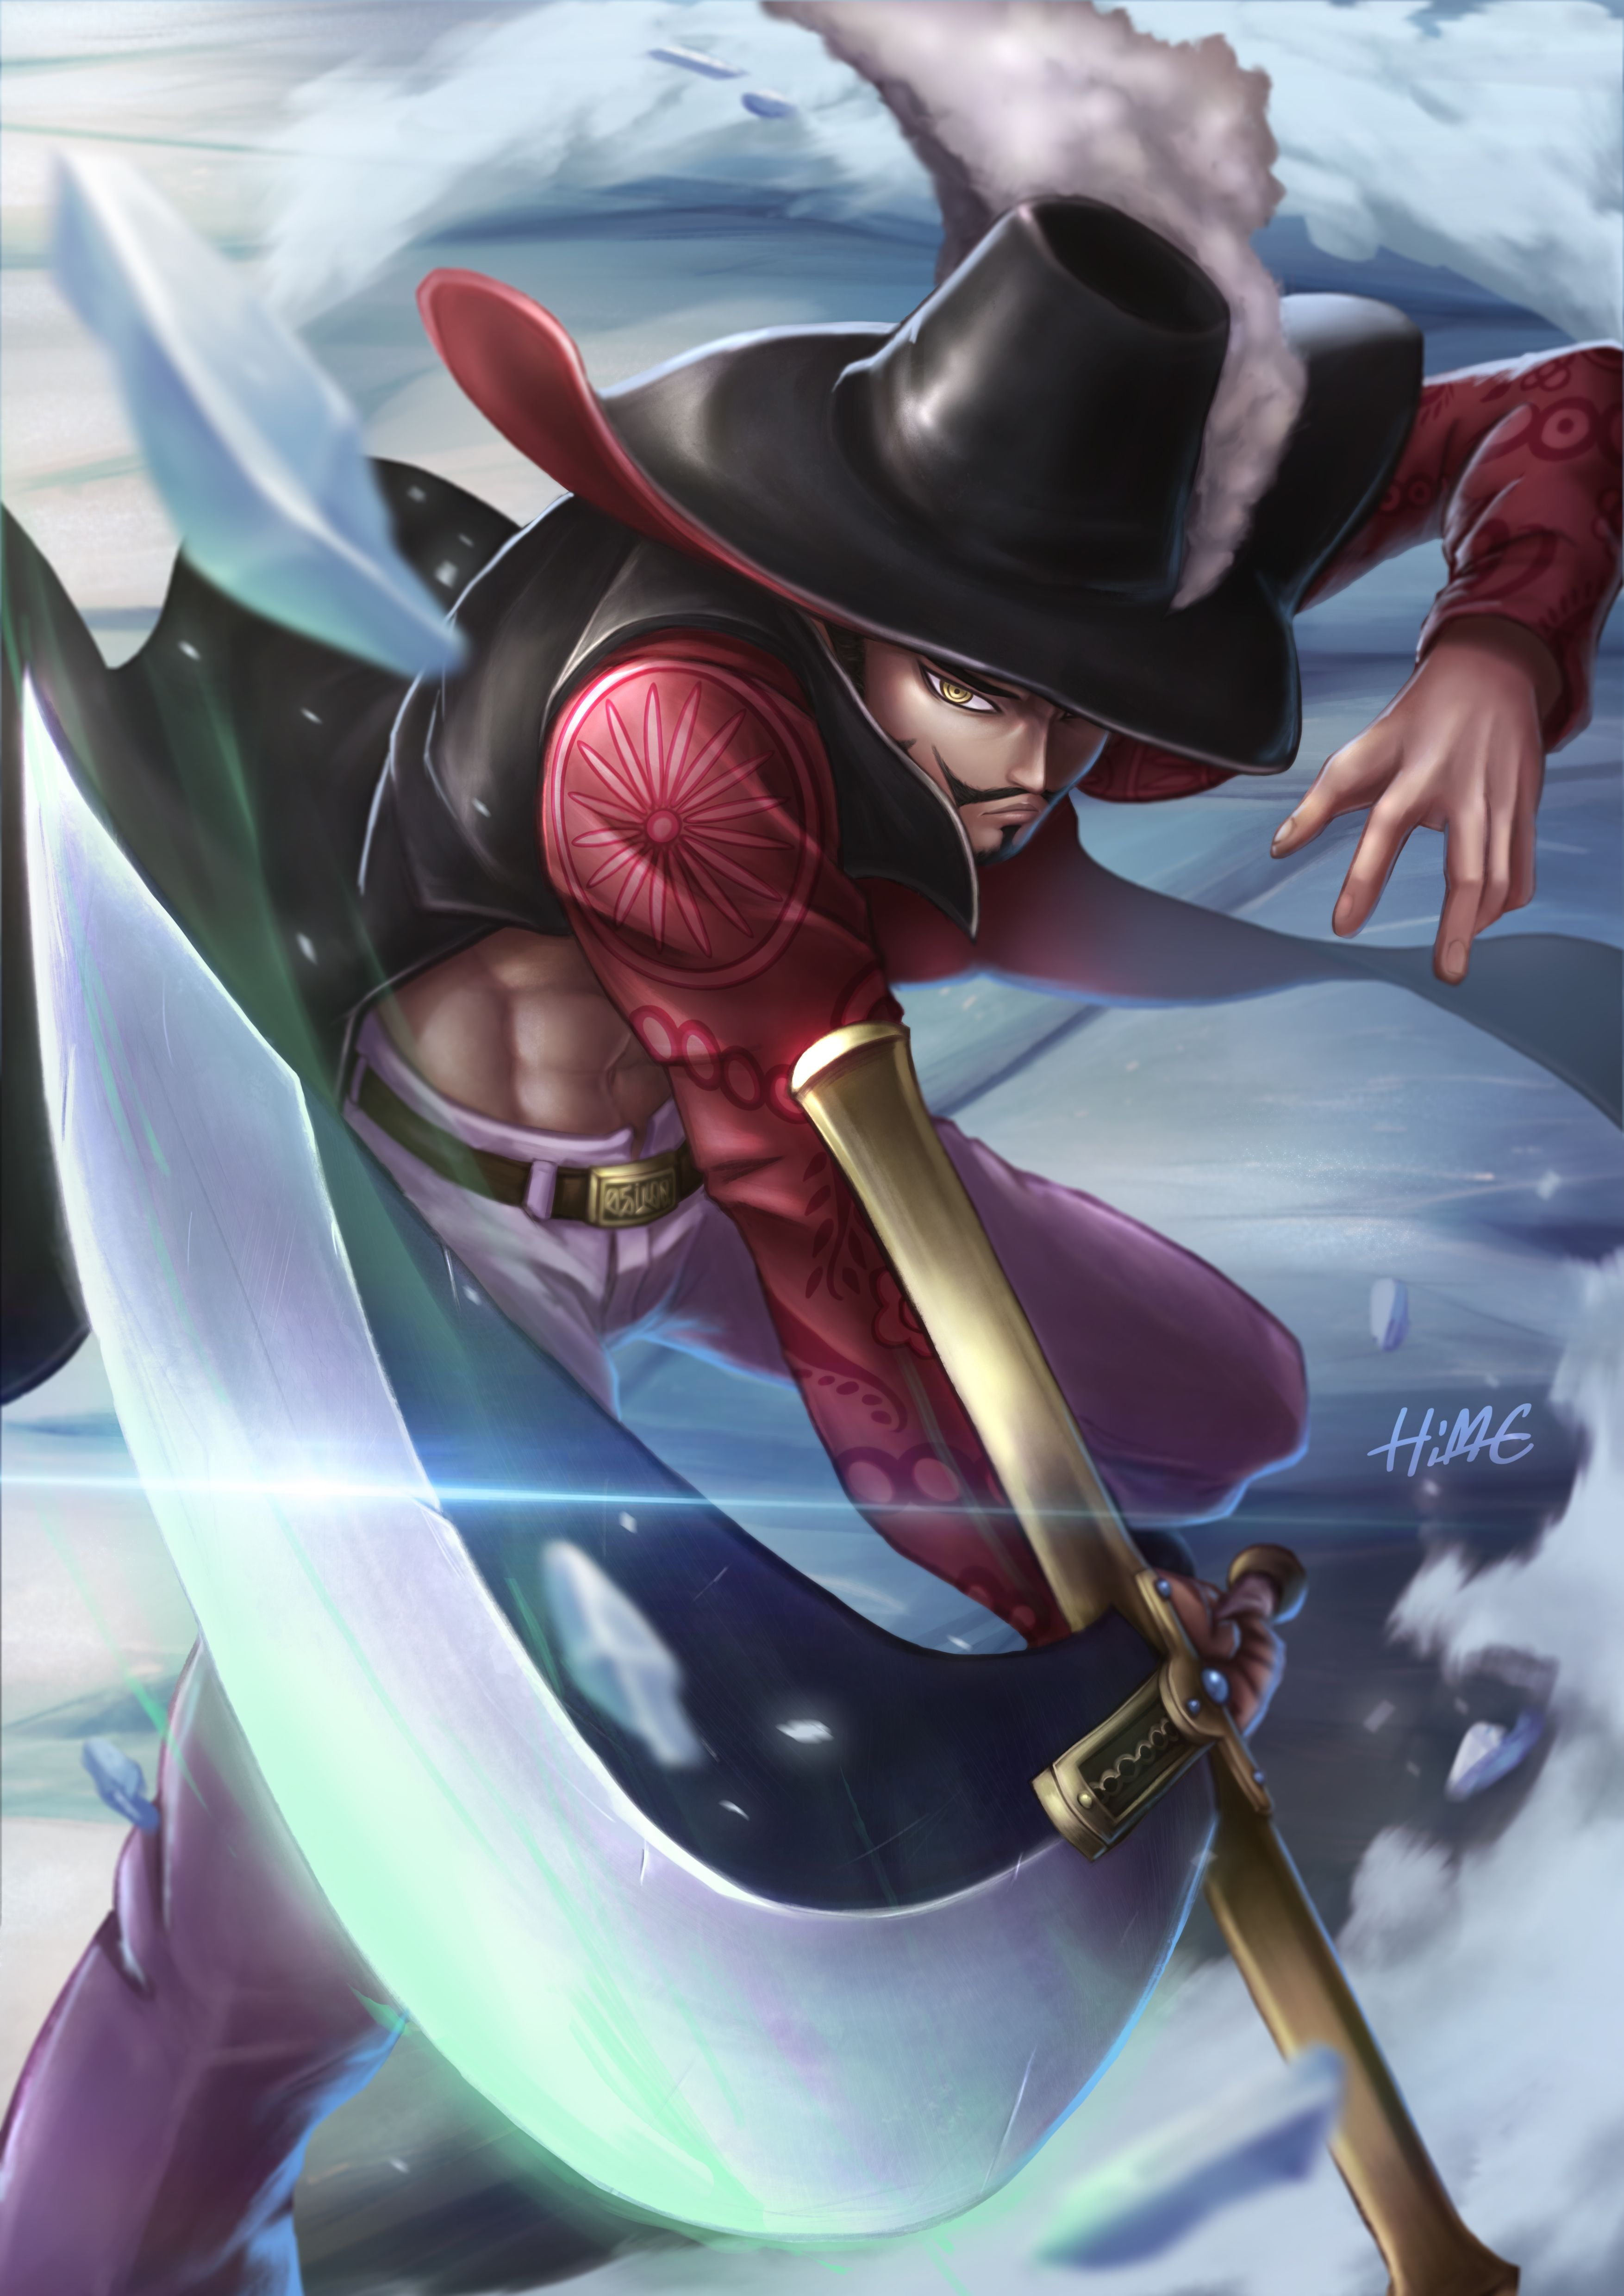 Dracule Mihawk One piece images, One piece, Anime one